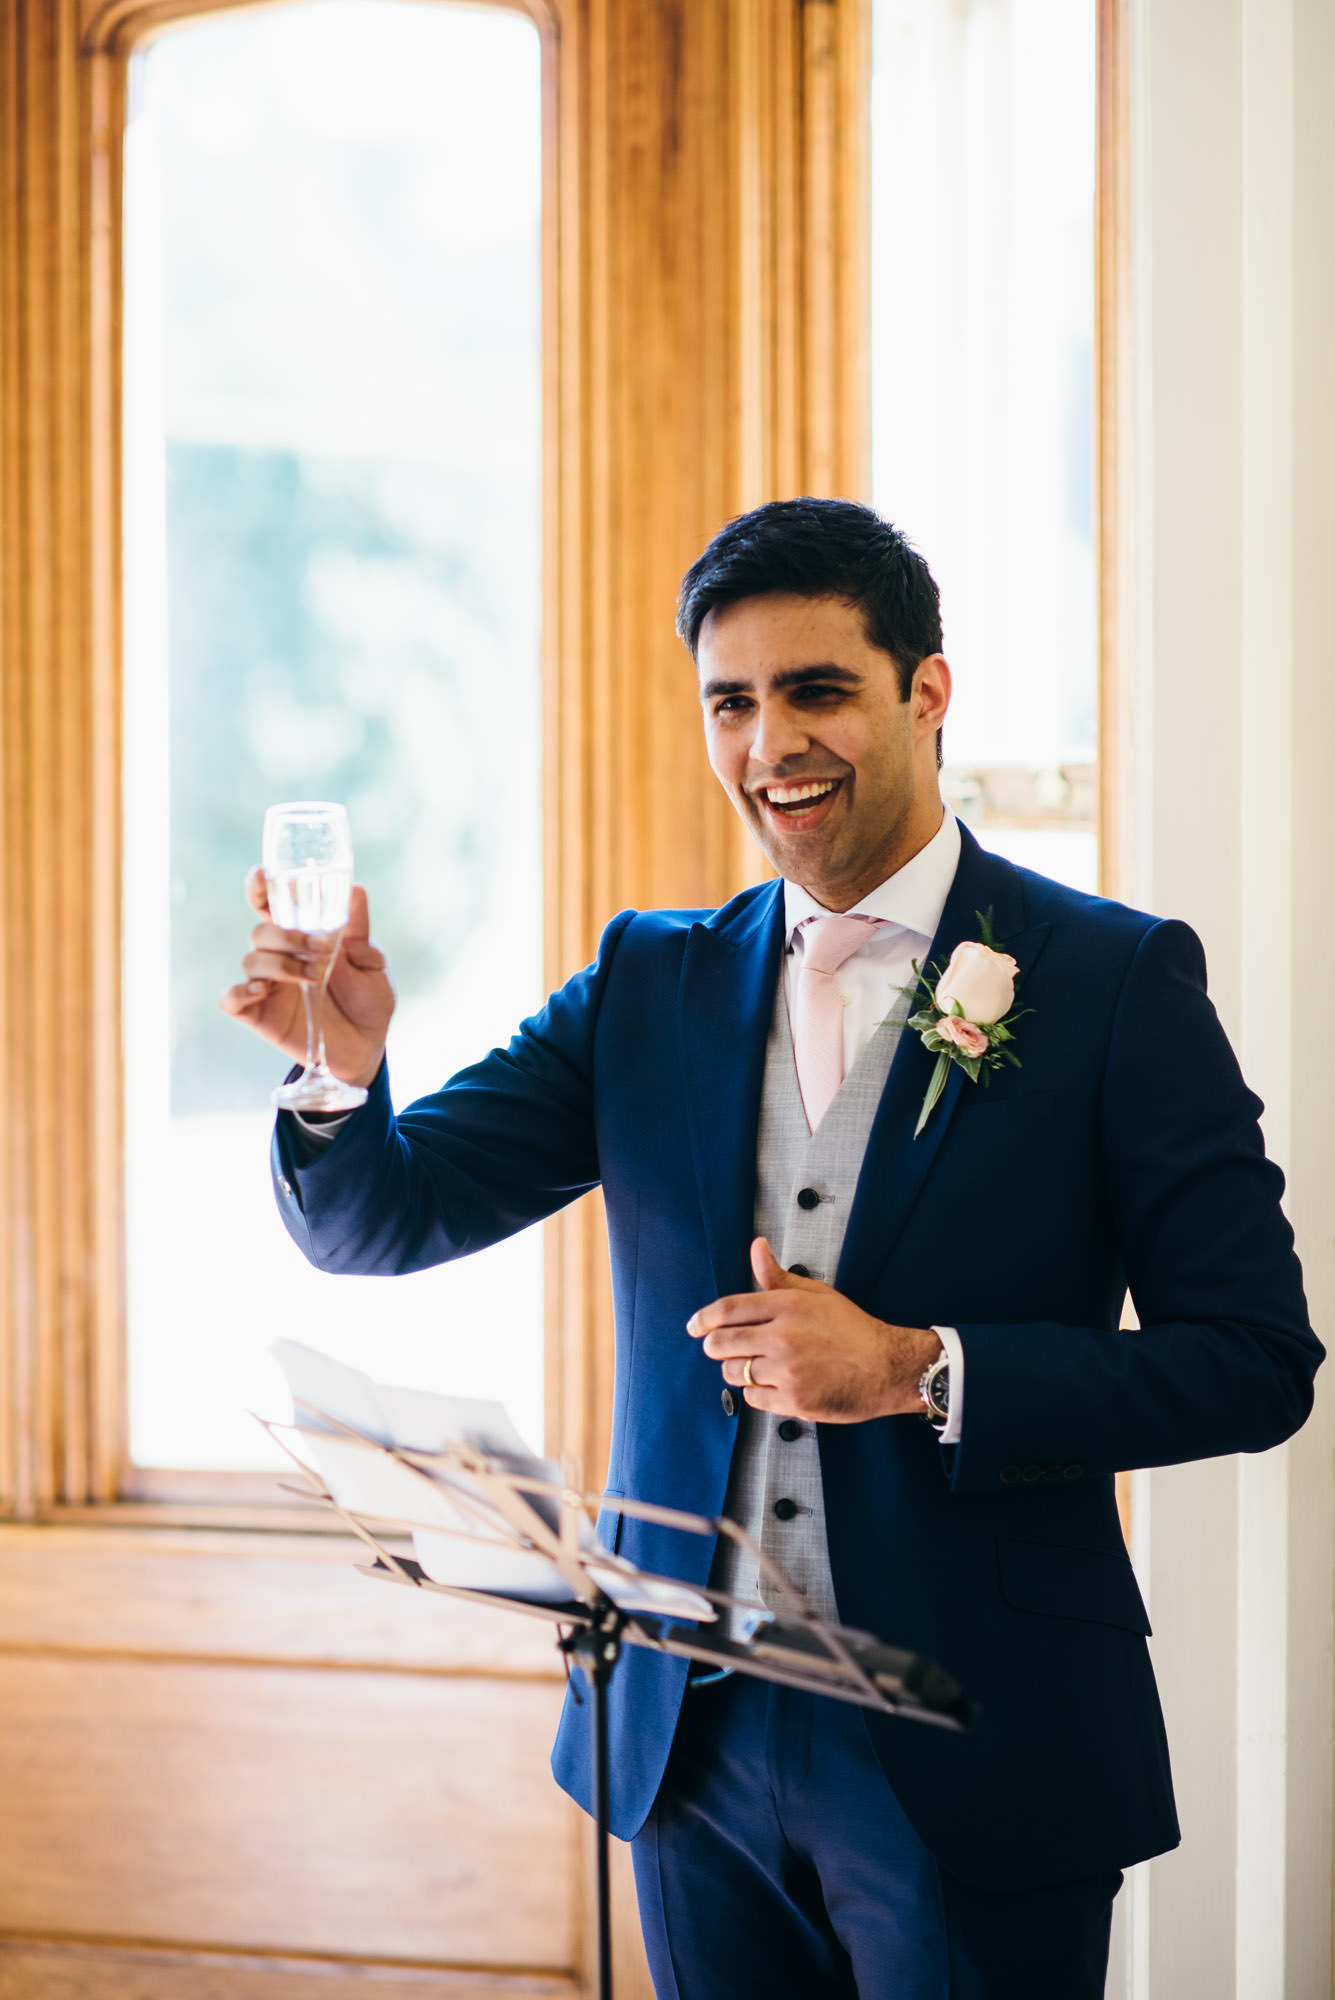 Wedding speech groom